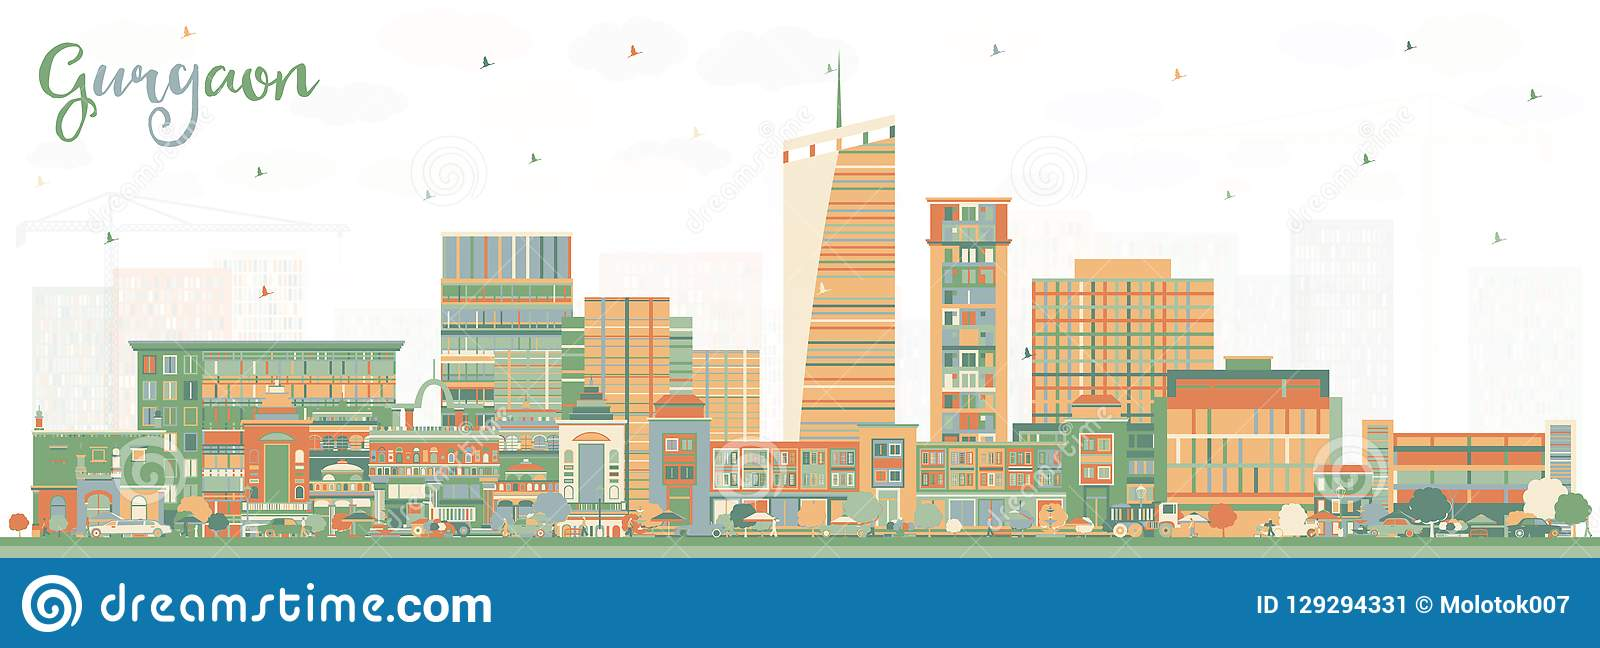 Gurgaon India City Skyline with Color Buildings.